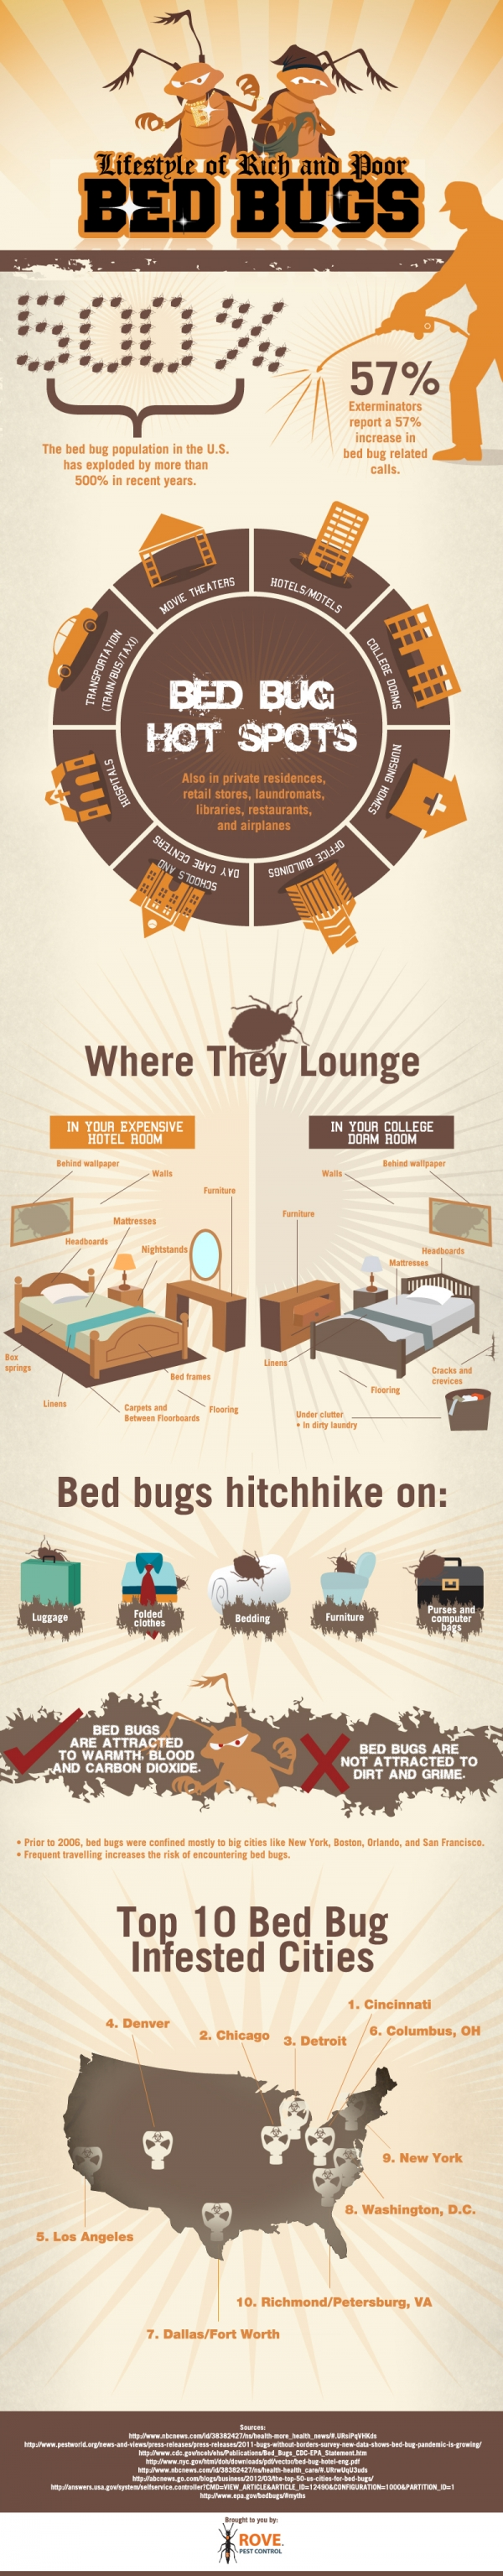 Bed Bug WakeUp Call Are You at Risk of a Bed Bug